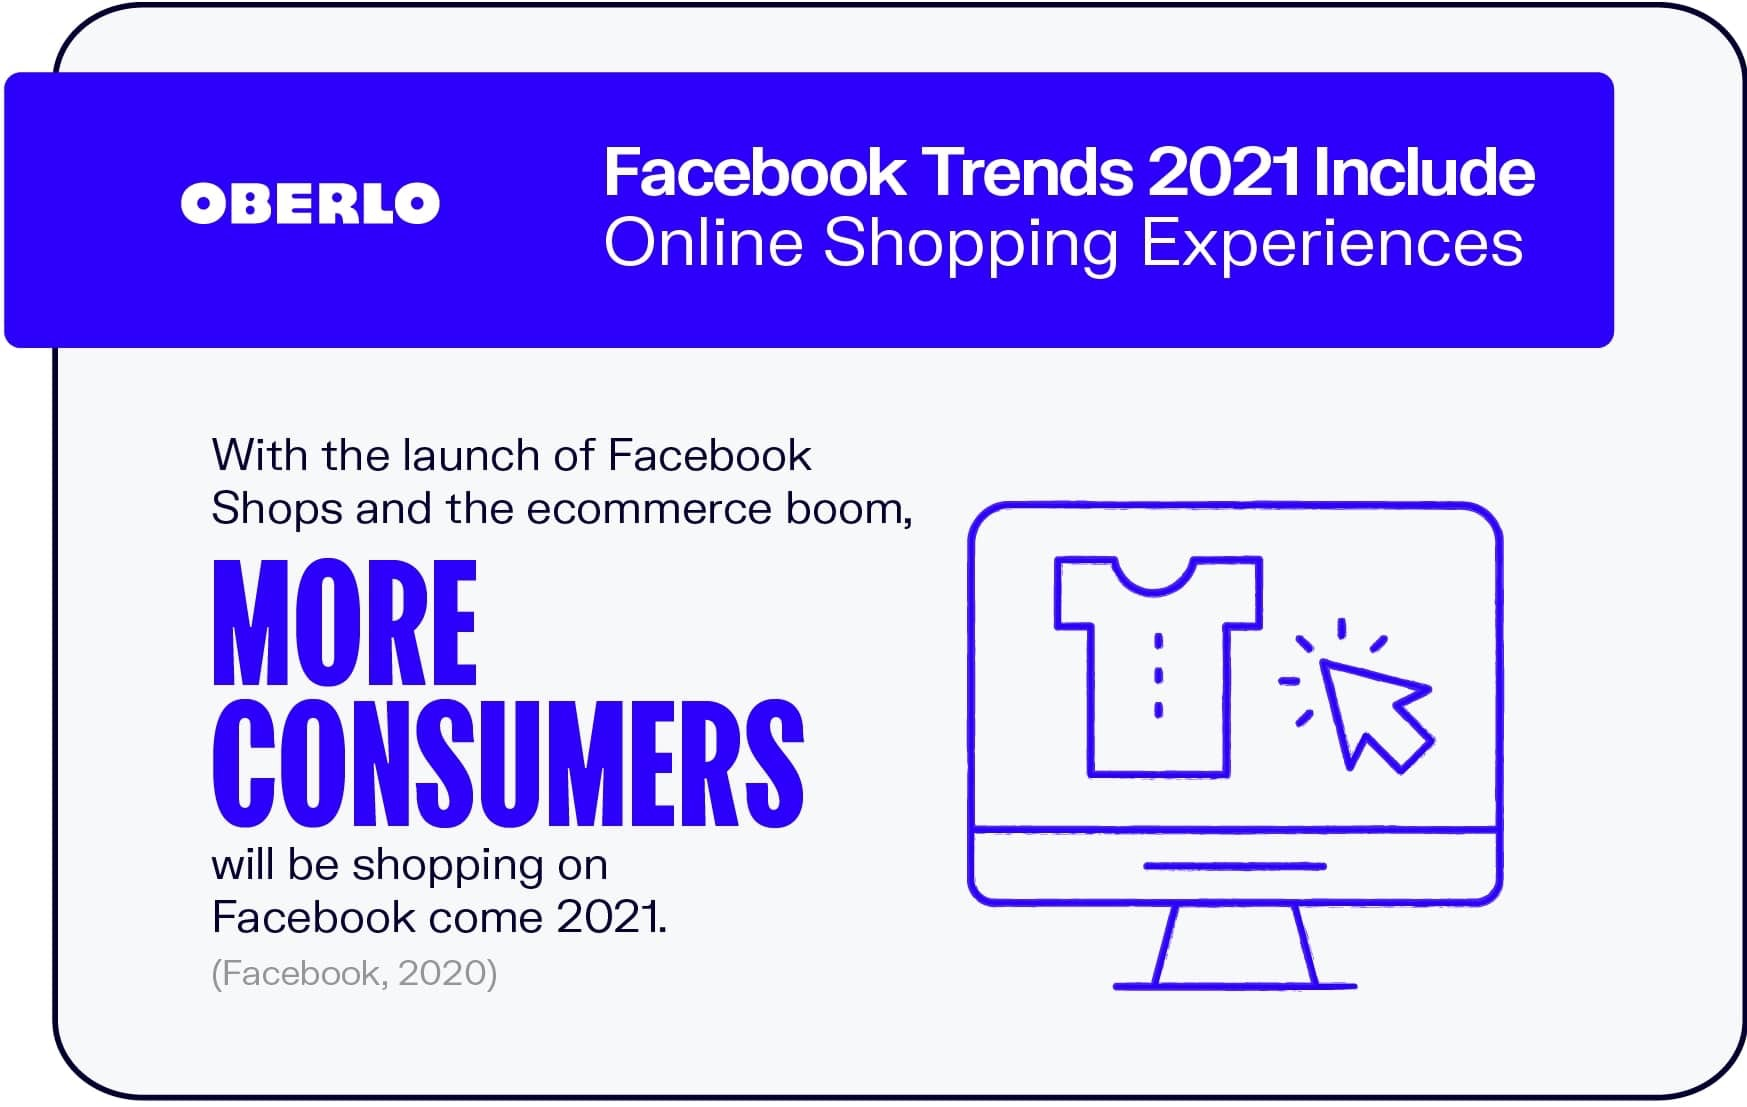 Facebook Trends 2021 Include Online Shopping Experiences